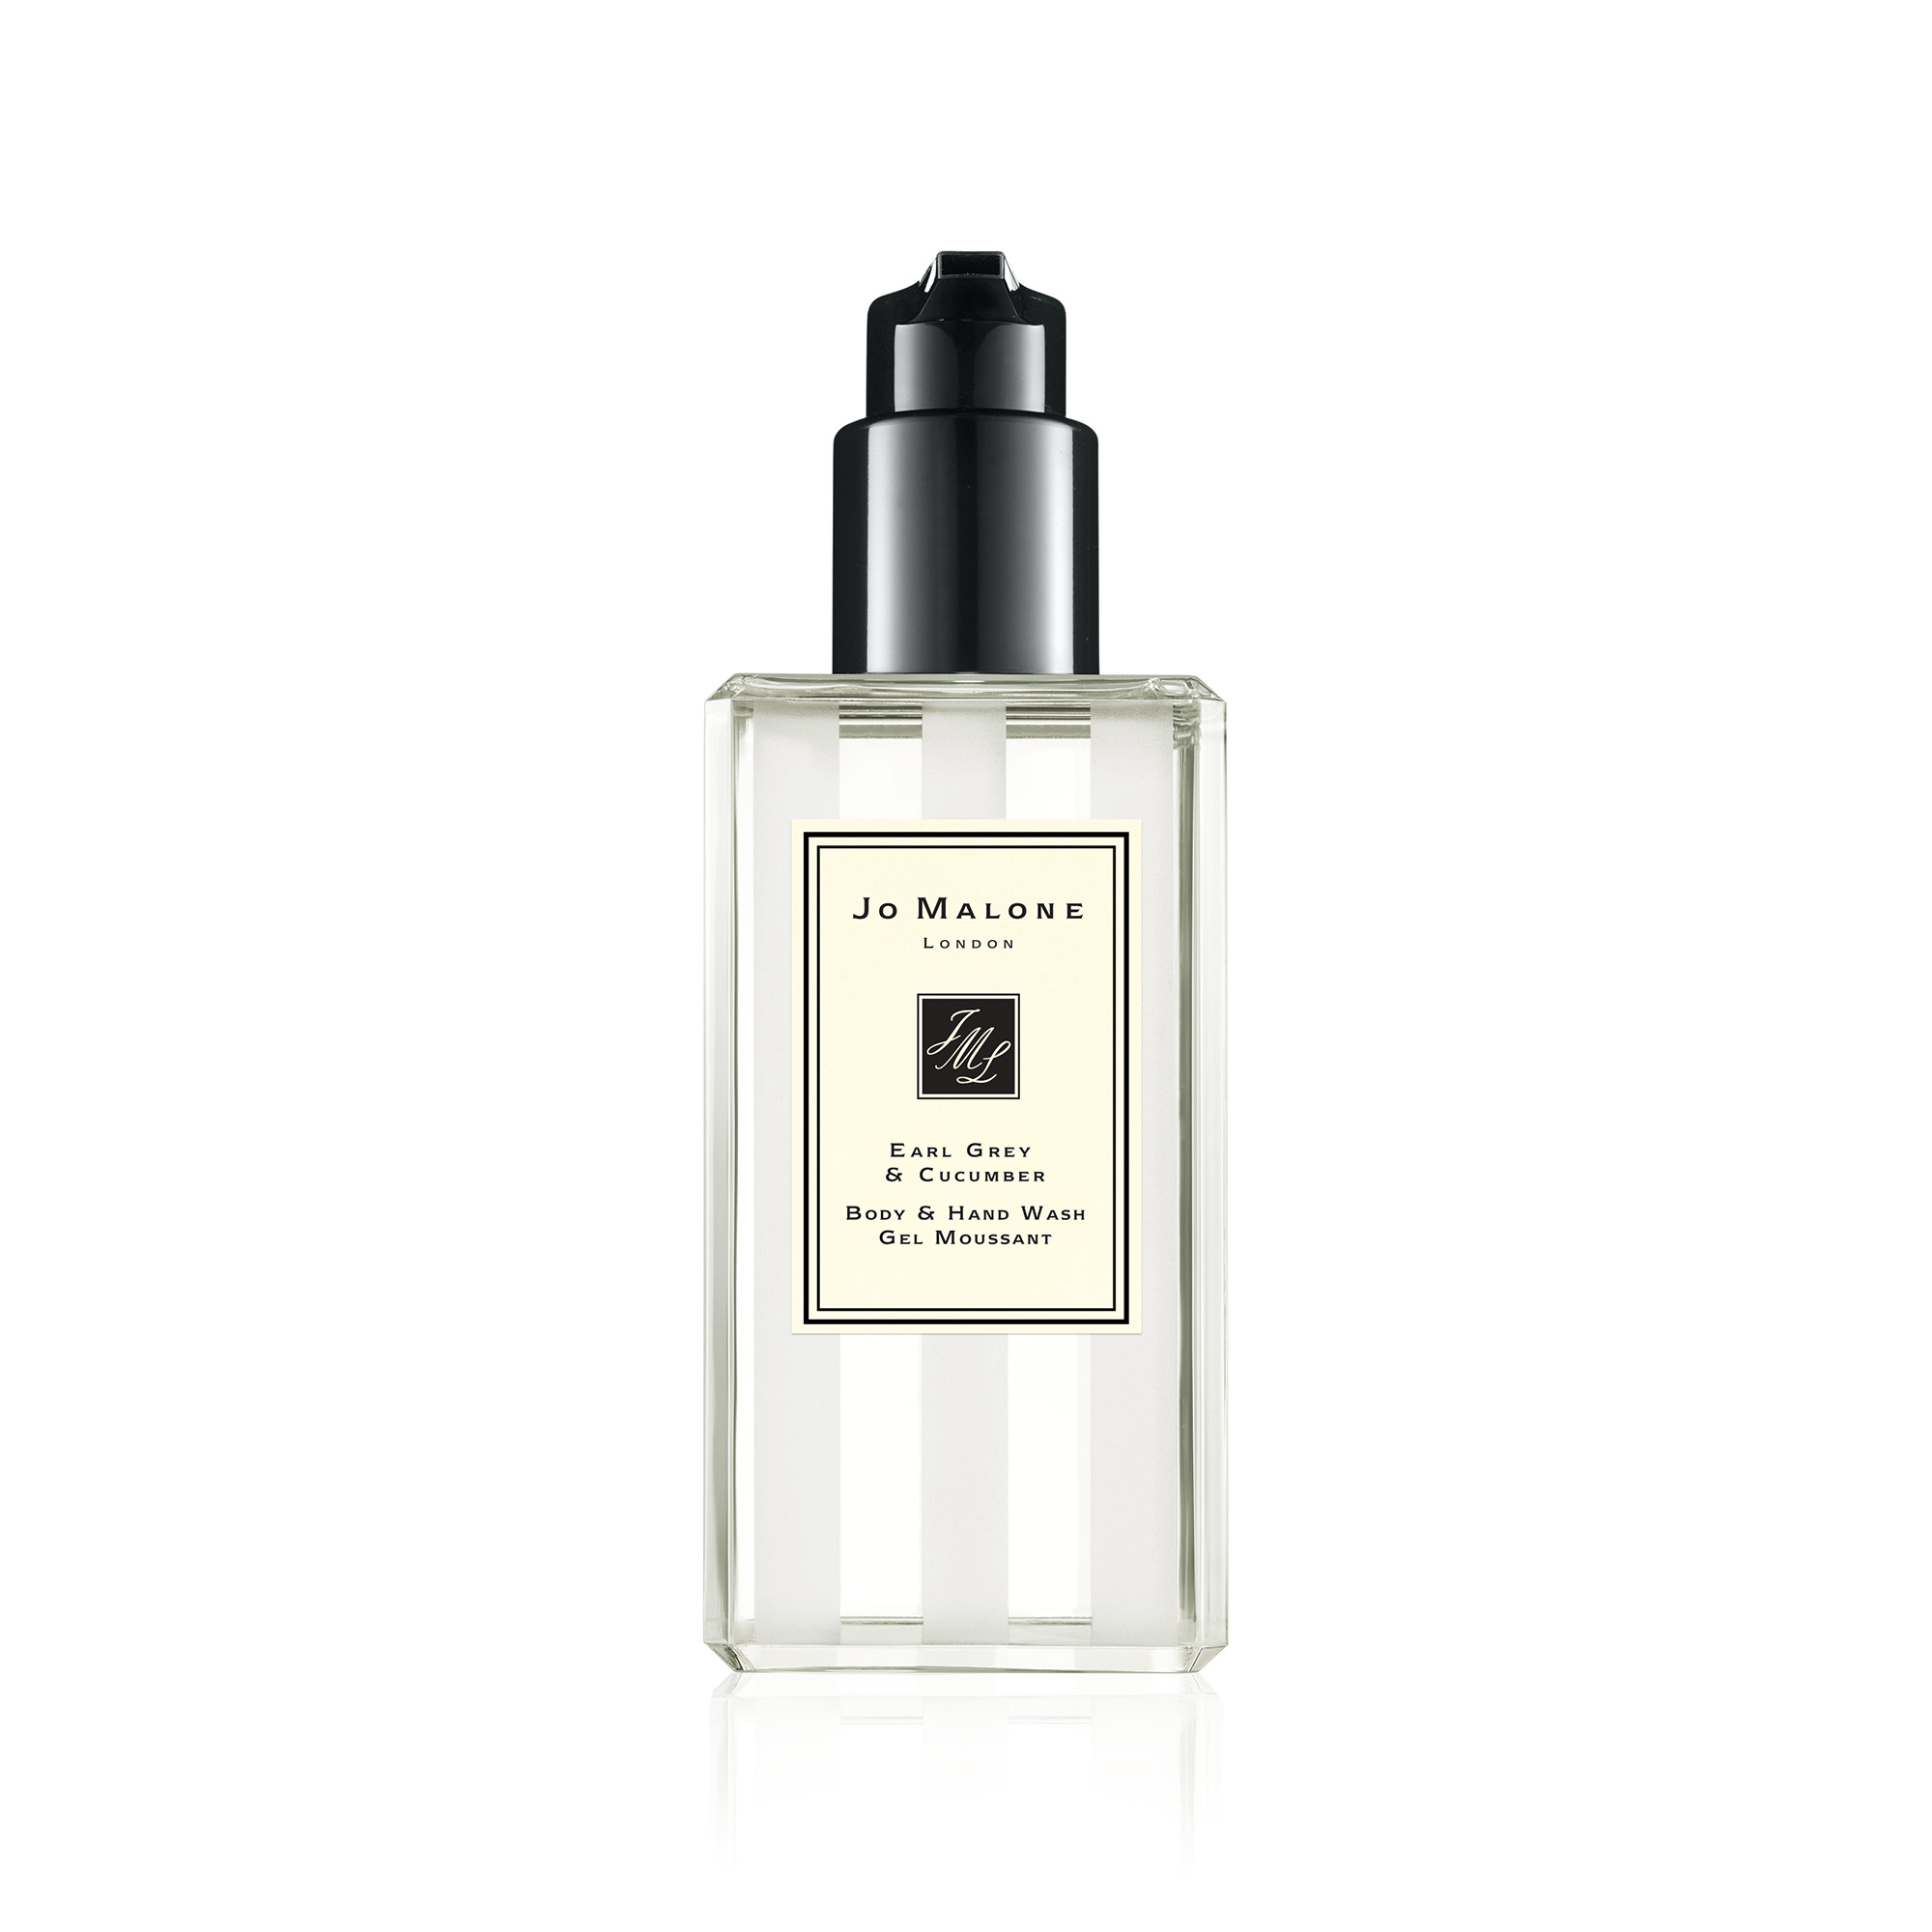 Earl Grey & Cucumber Body & Hand Wash 250 ml